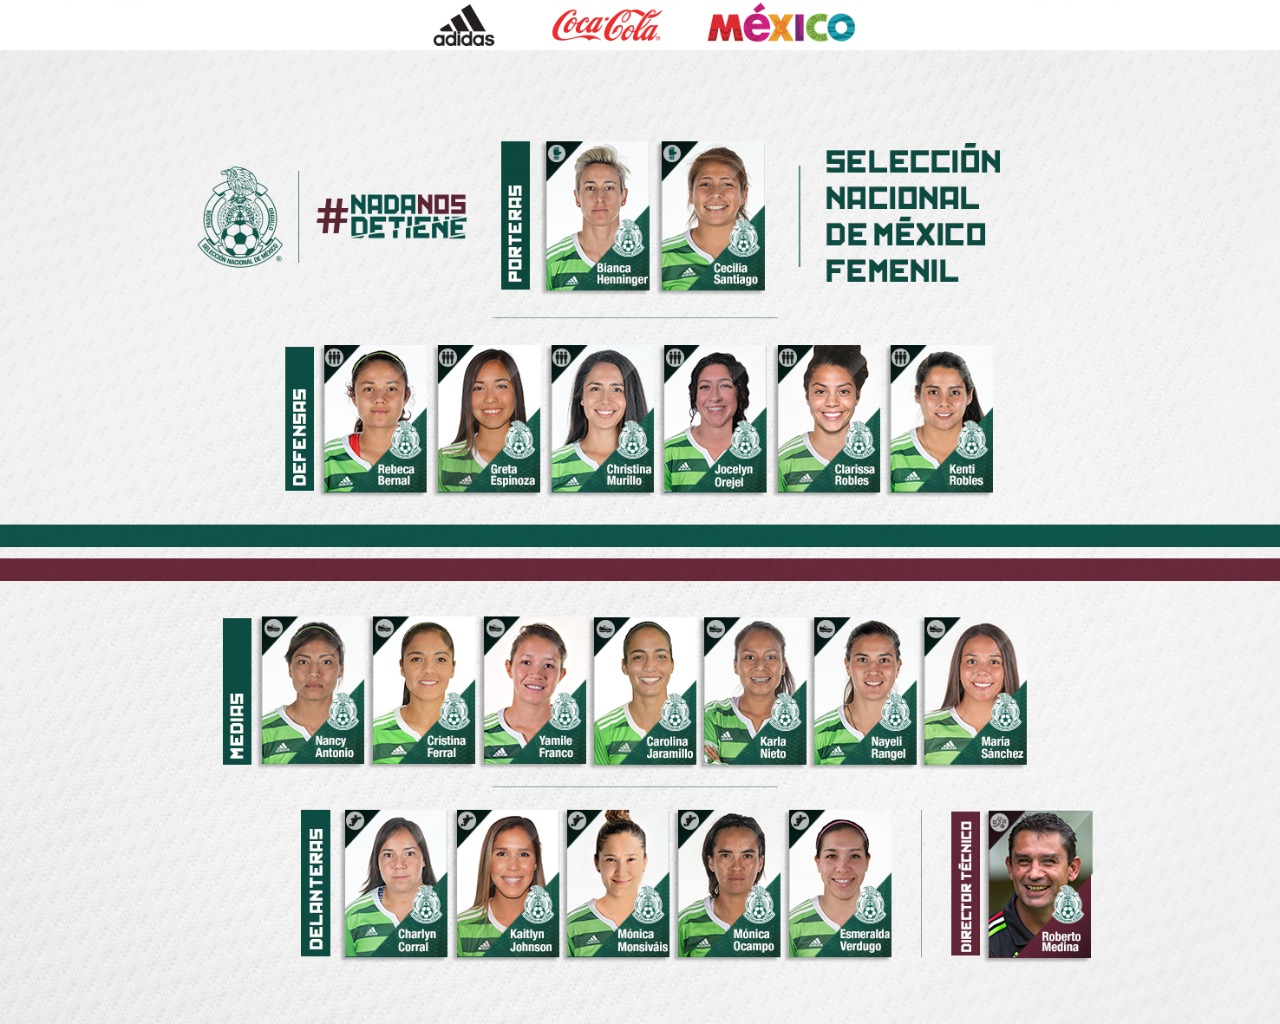 miseleccion.mx 9